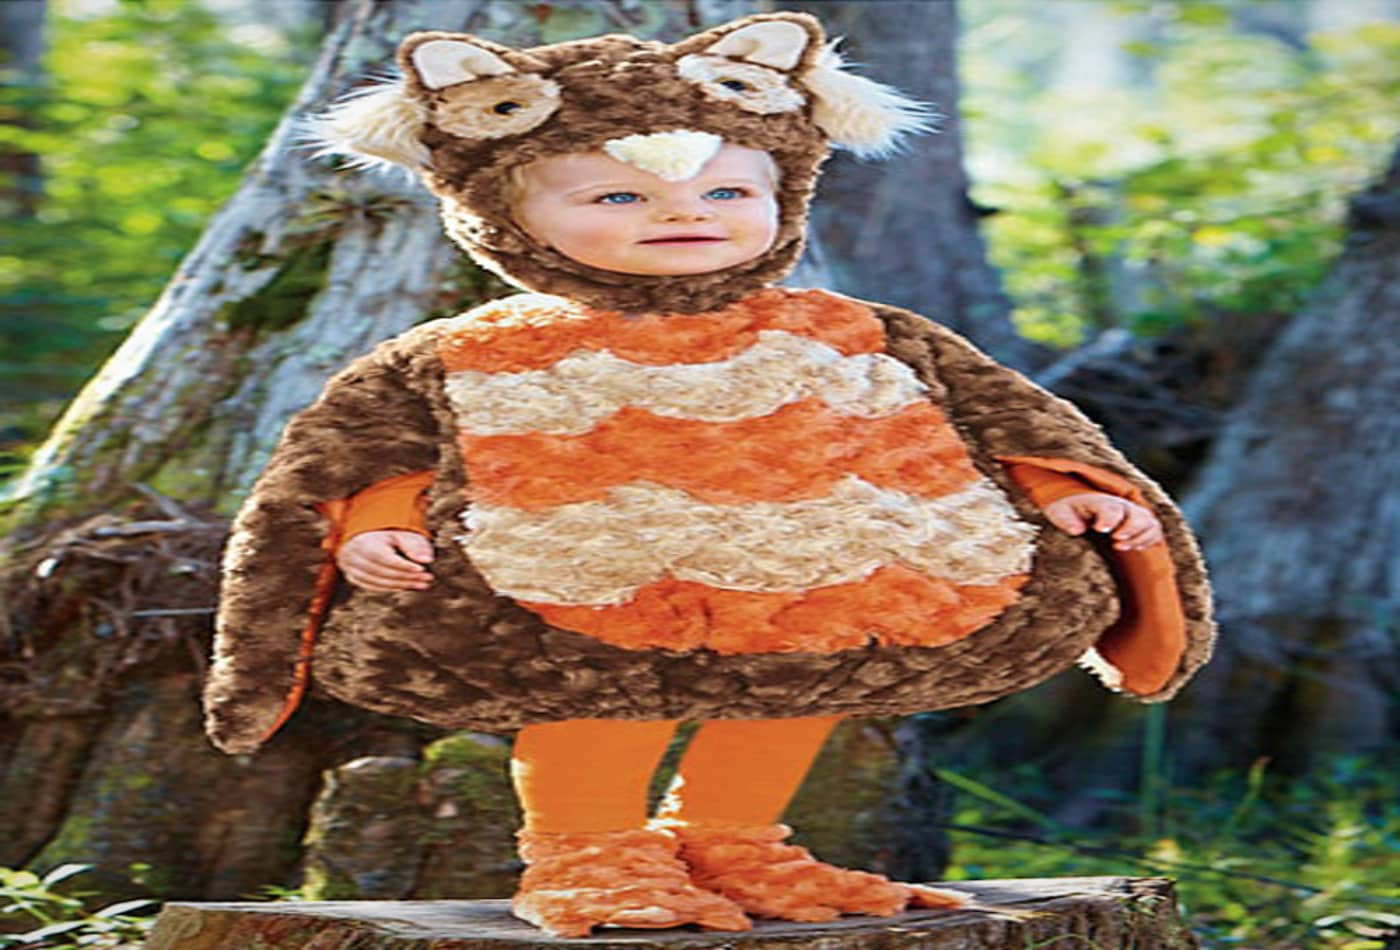 Halloween-costumes-kids-2012-owl.jpg